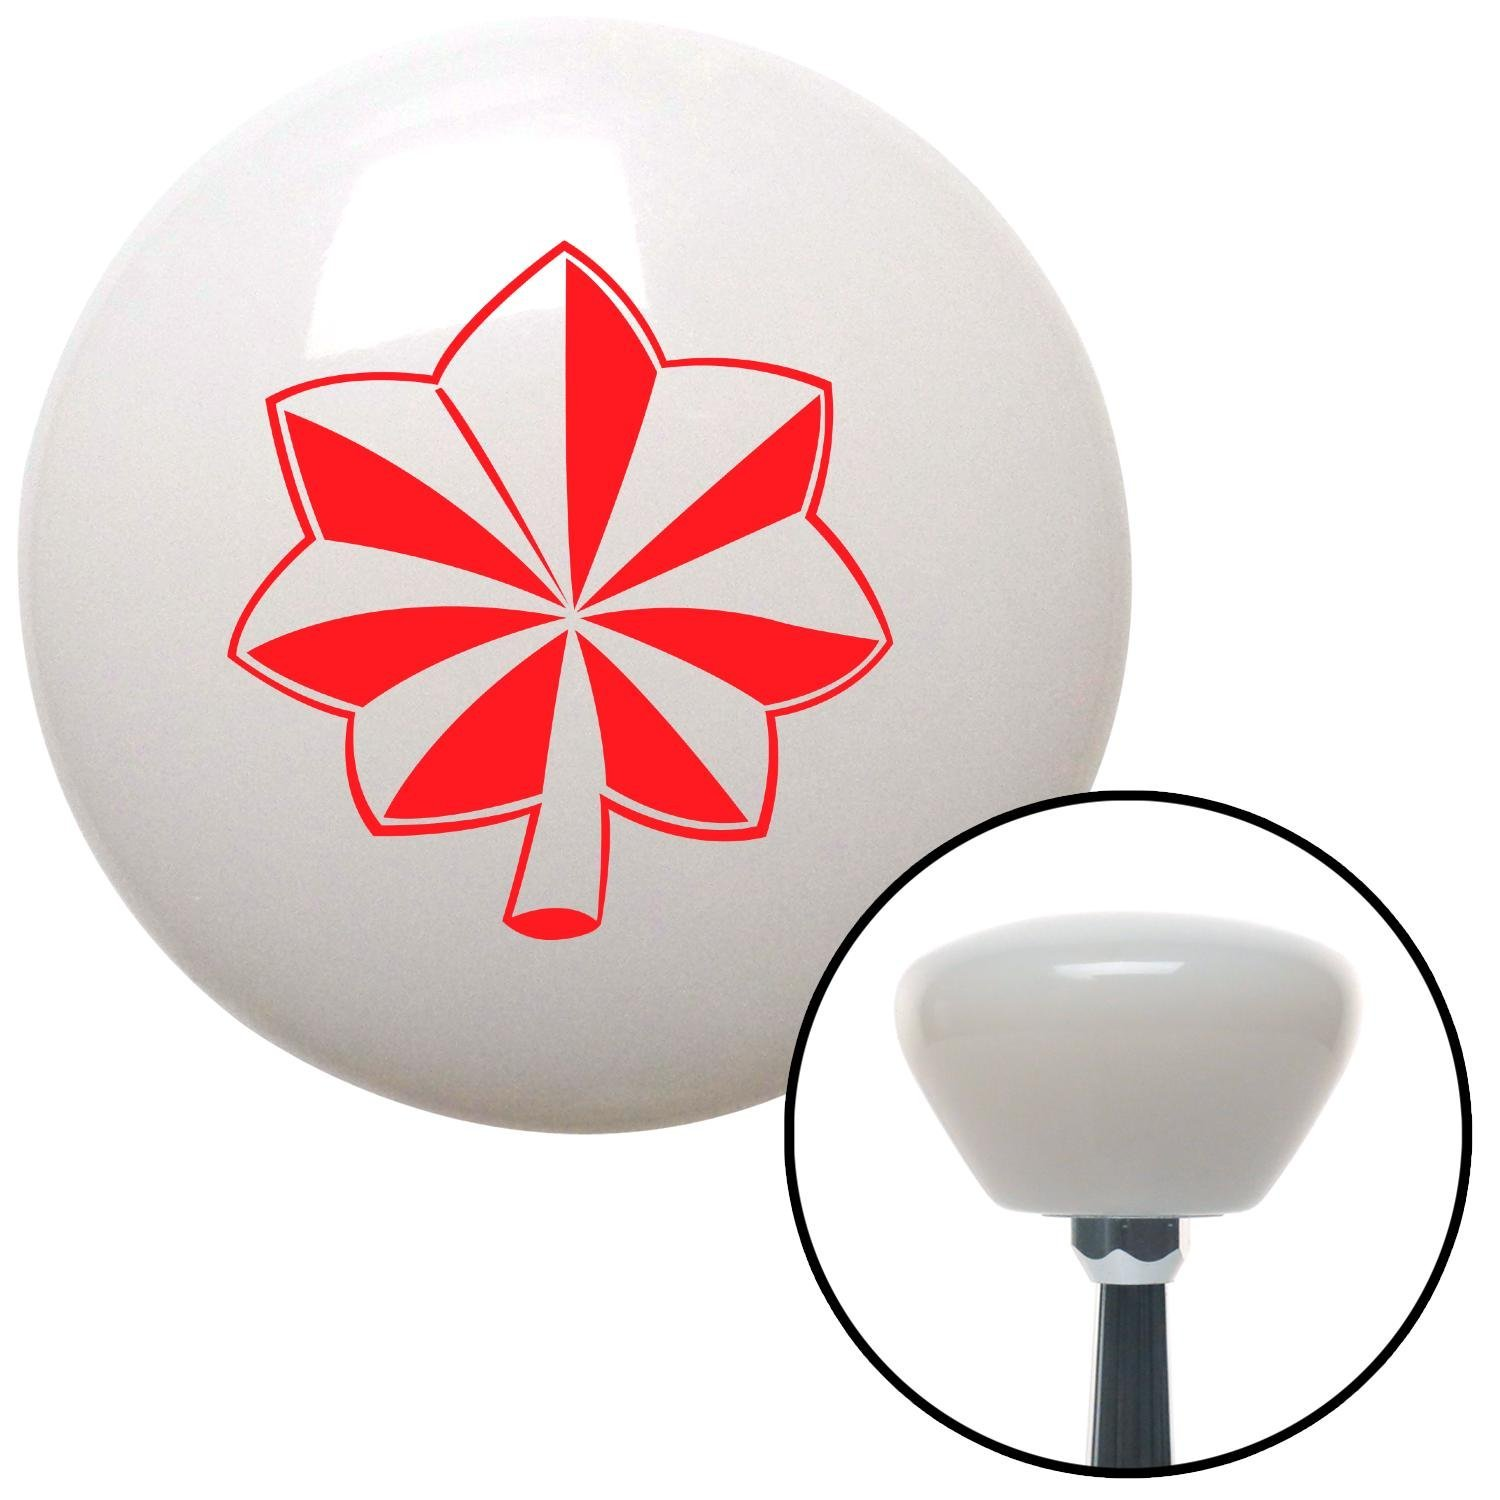 American Shifter 154407 White Retro Shift Knob with M16 x 1.5 Insert Red Officer 04 - Major and Lt. Colonel